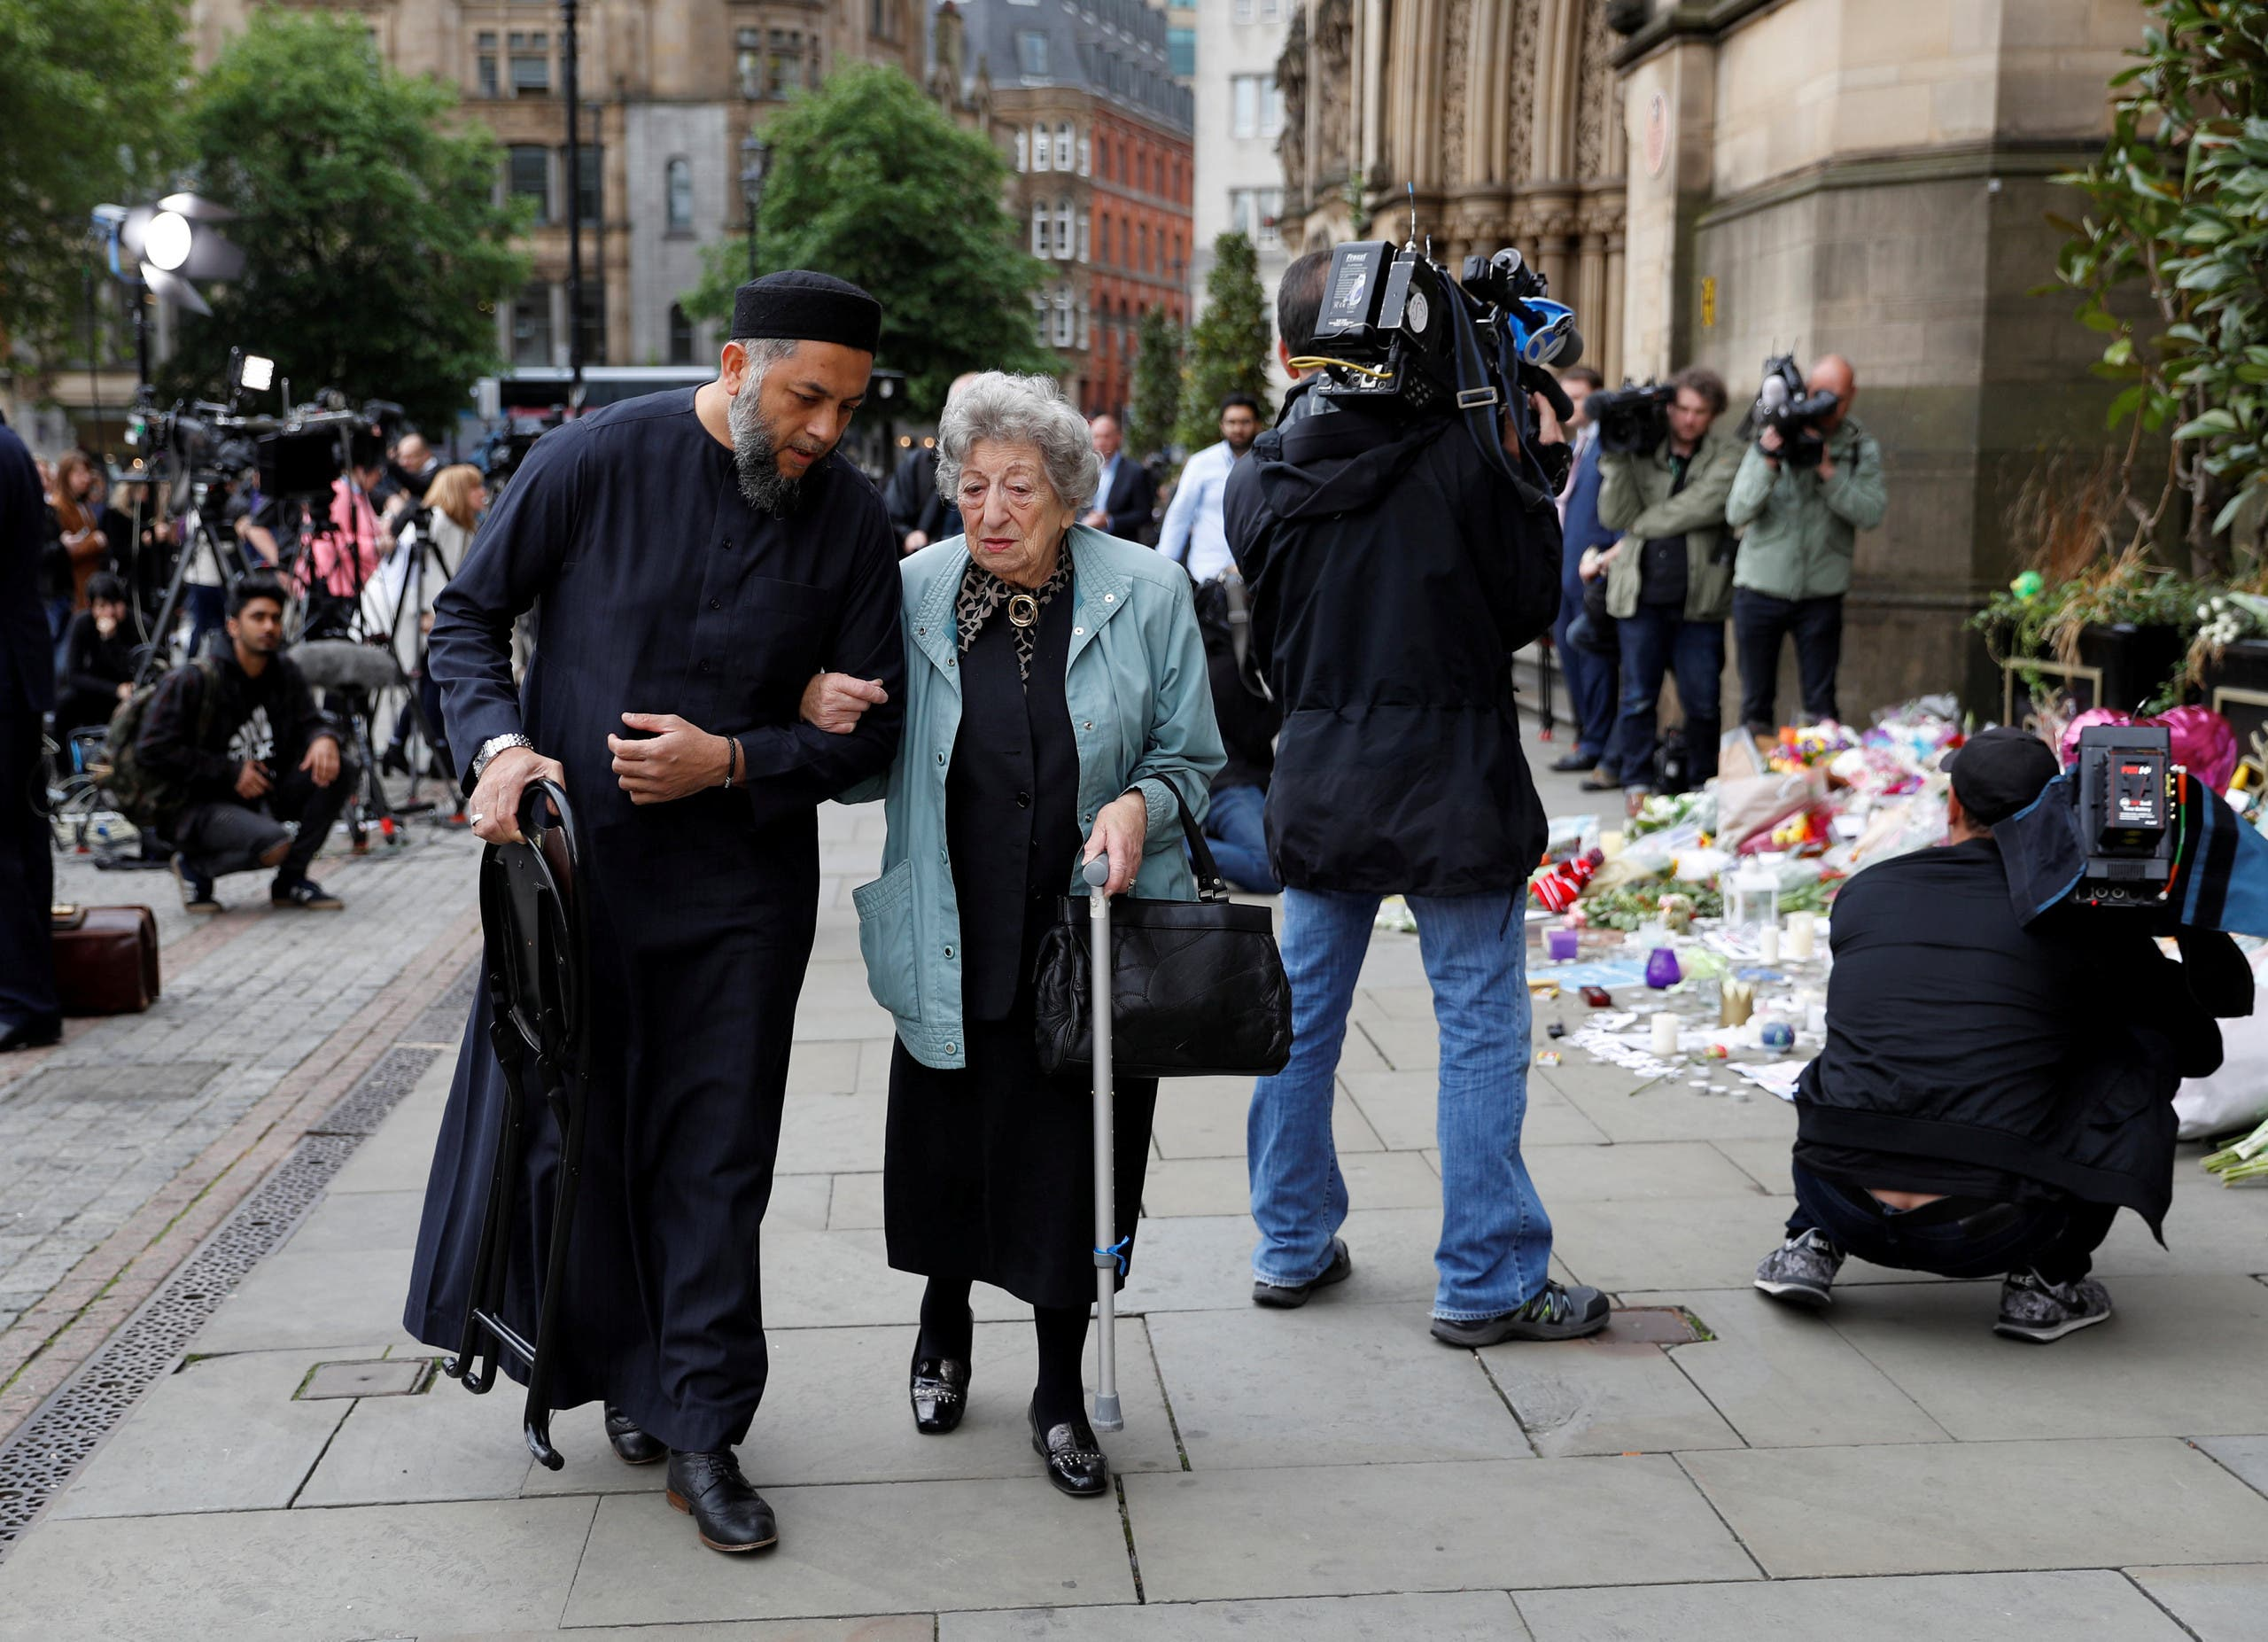 A Muslim man named Sadiq Patel and a Jewish woman named Renee Rachel Black walk by floral tributes in Albert Square in Manchester, Britain May 24, 2017. (Reuters)